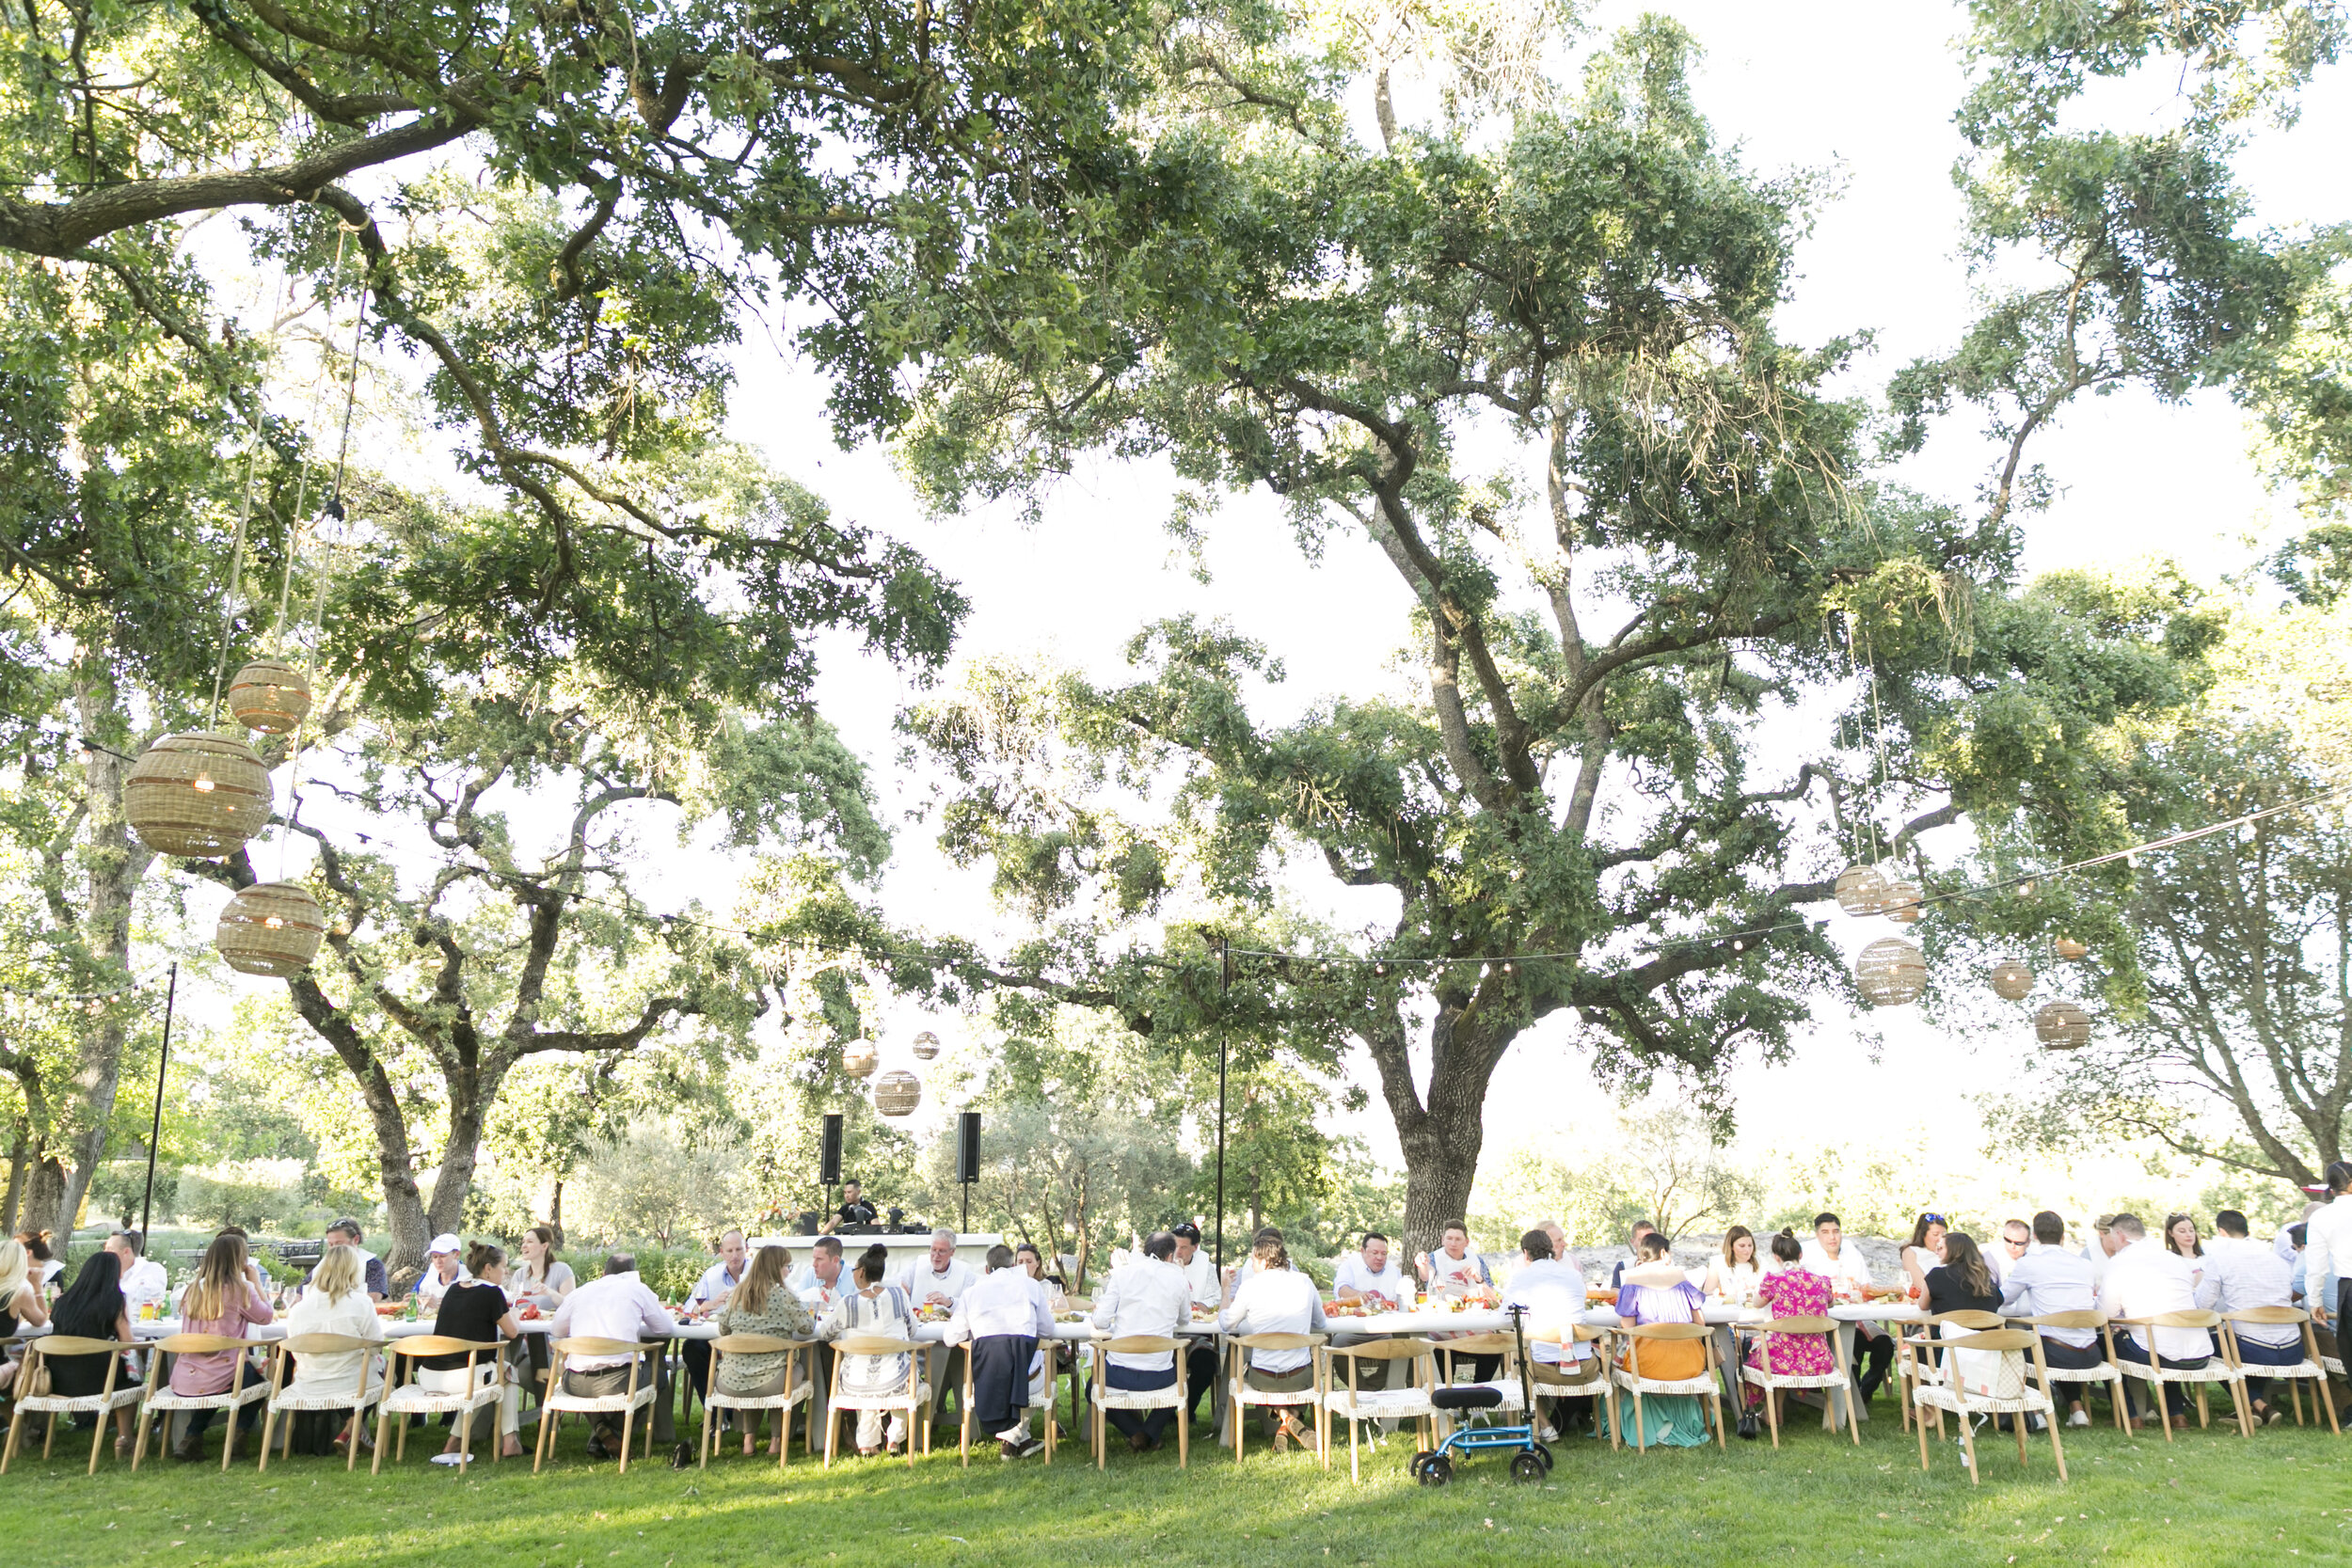 Domaine Chandon Event 6.10.19_193.jpg